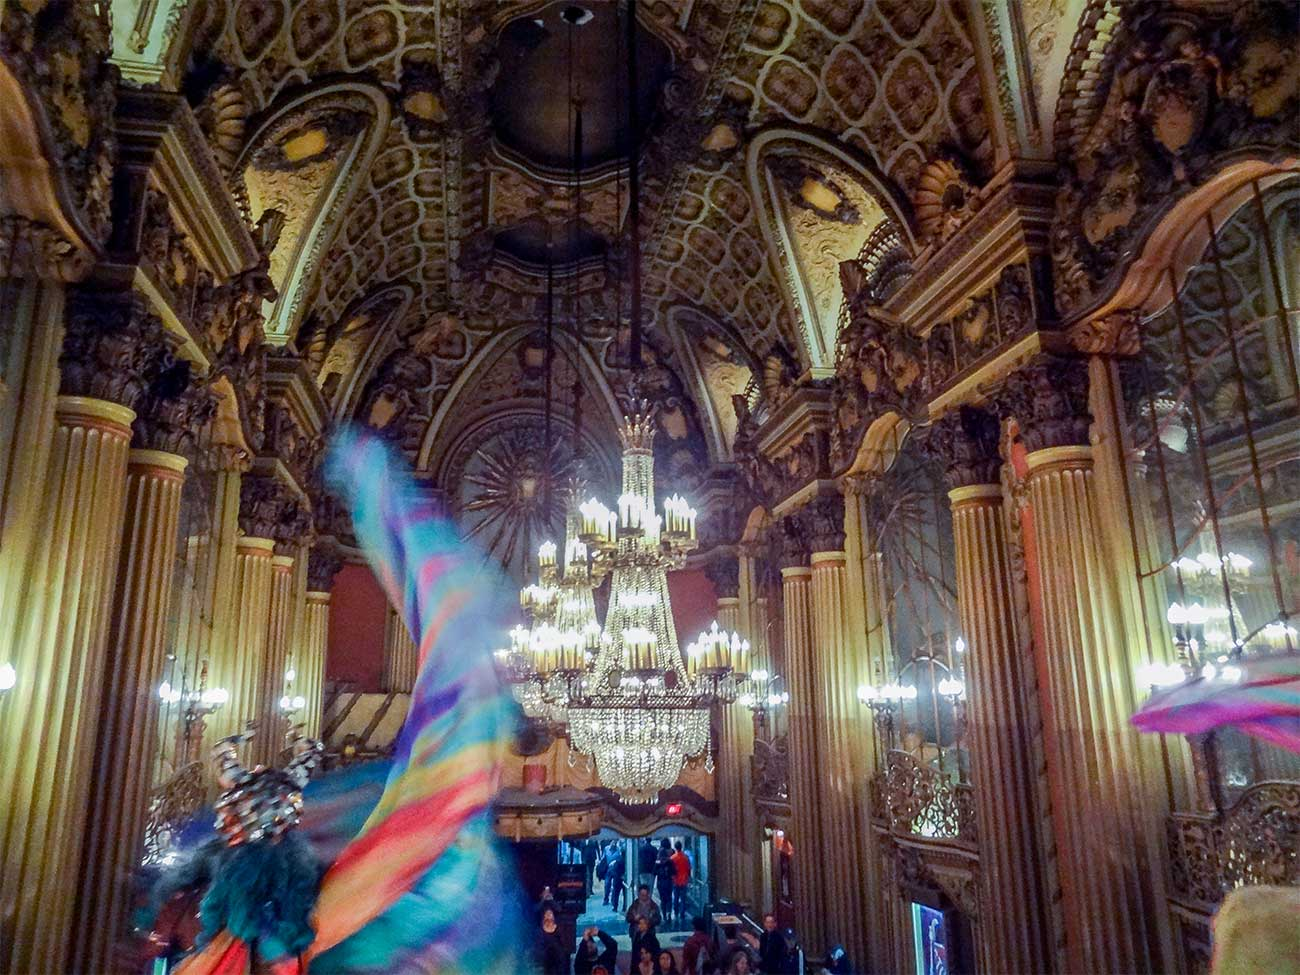 Lobby of the Los Angeles Theatre with crystal chandeliers